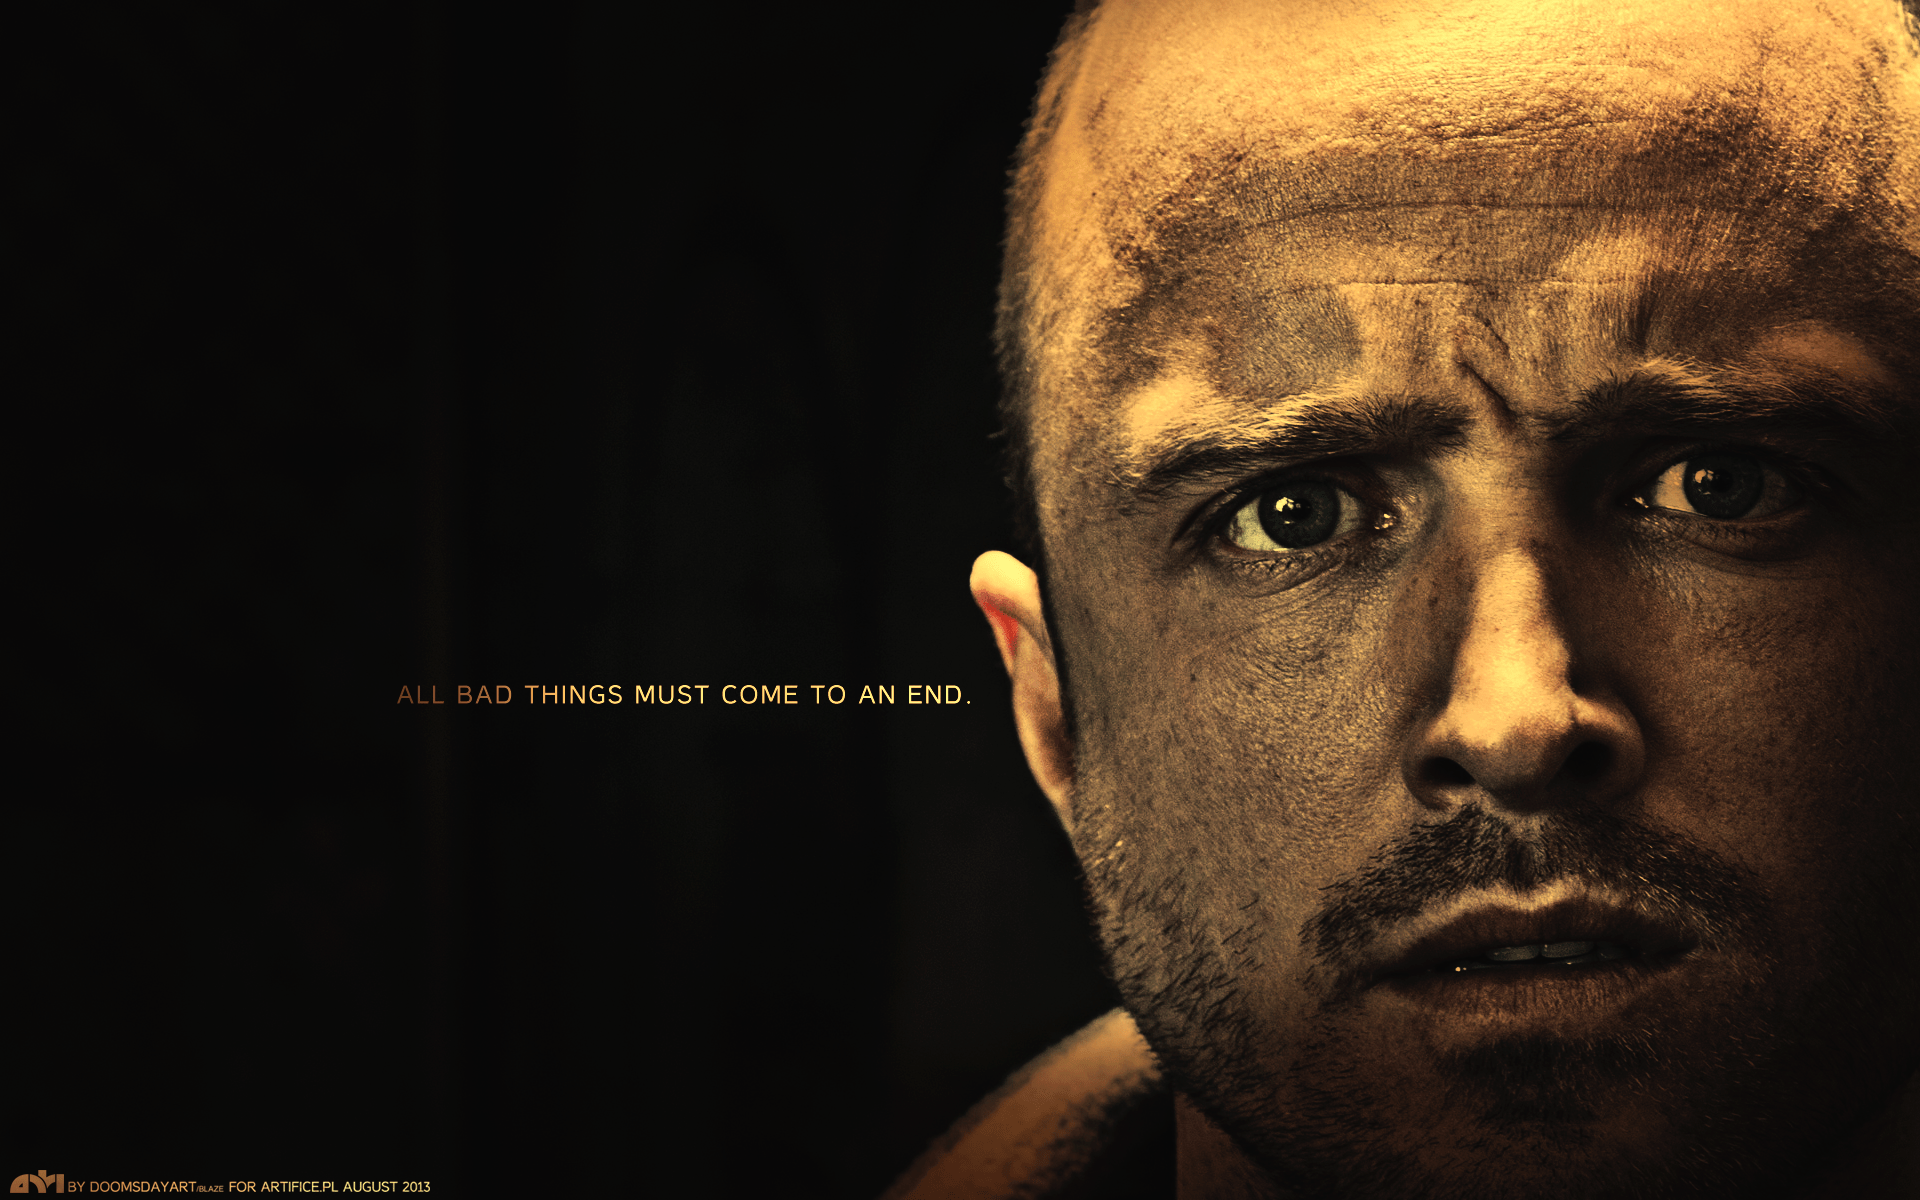 V For Vendetta Quotes Iphone Wallpaper Breaking Bad Hd Wallpaper Hintergrund 1920x1200 Id